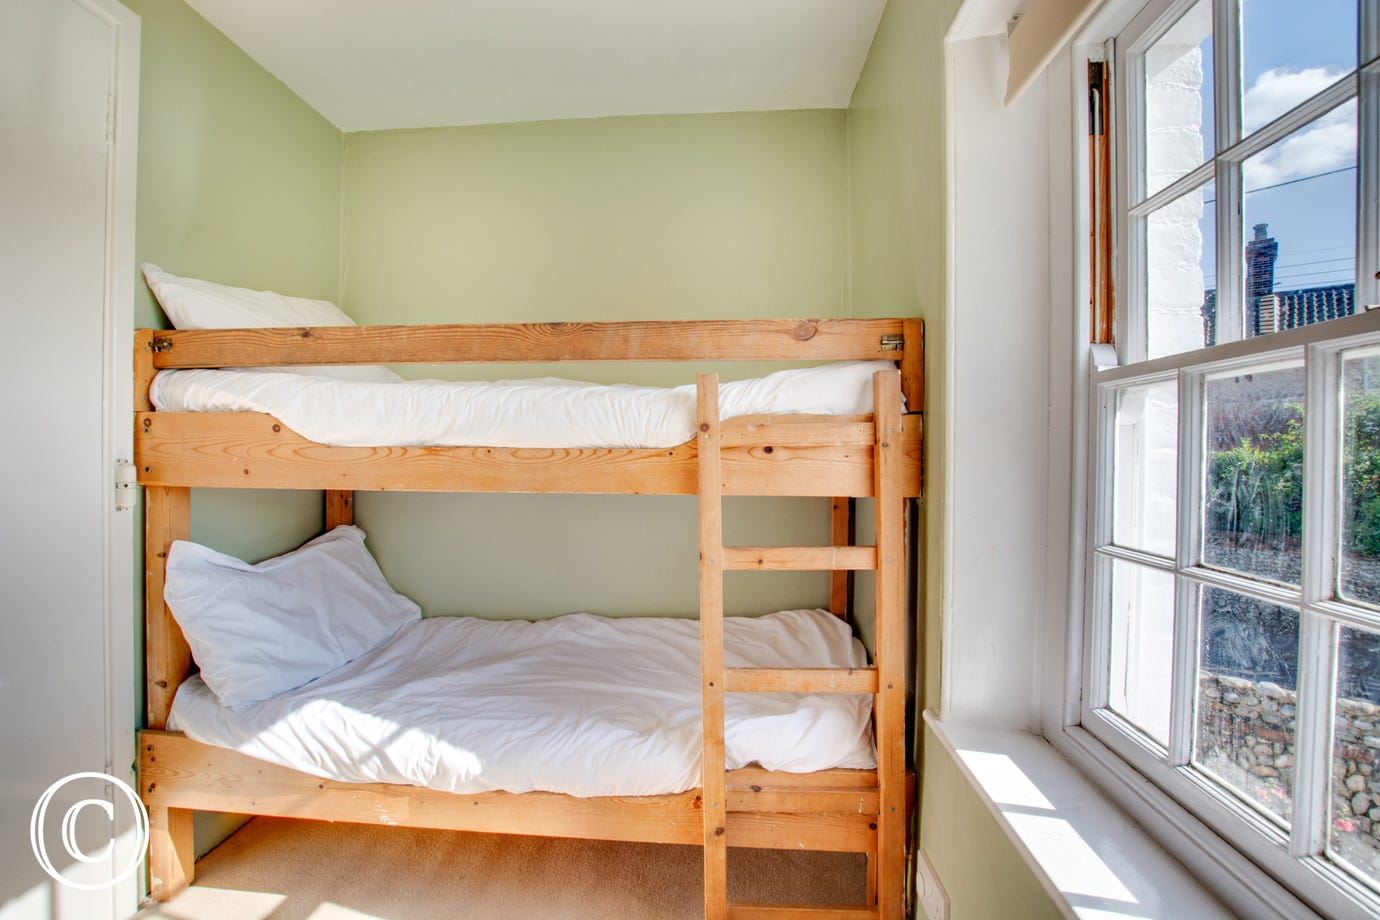 Cheerful first floor bedroom with bunk beds - suitable for children only